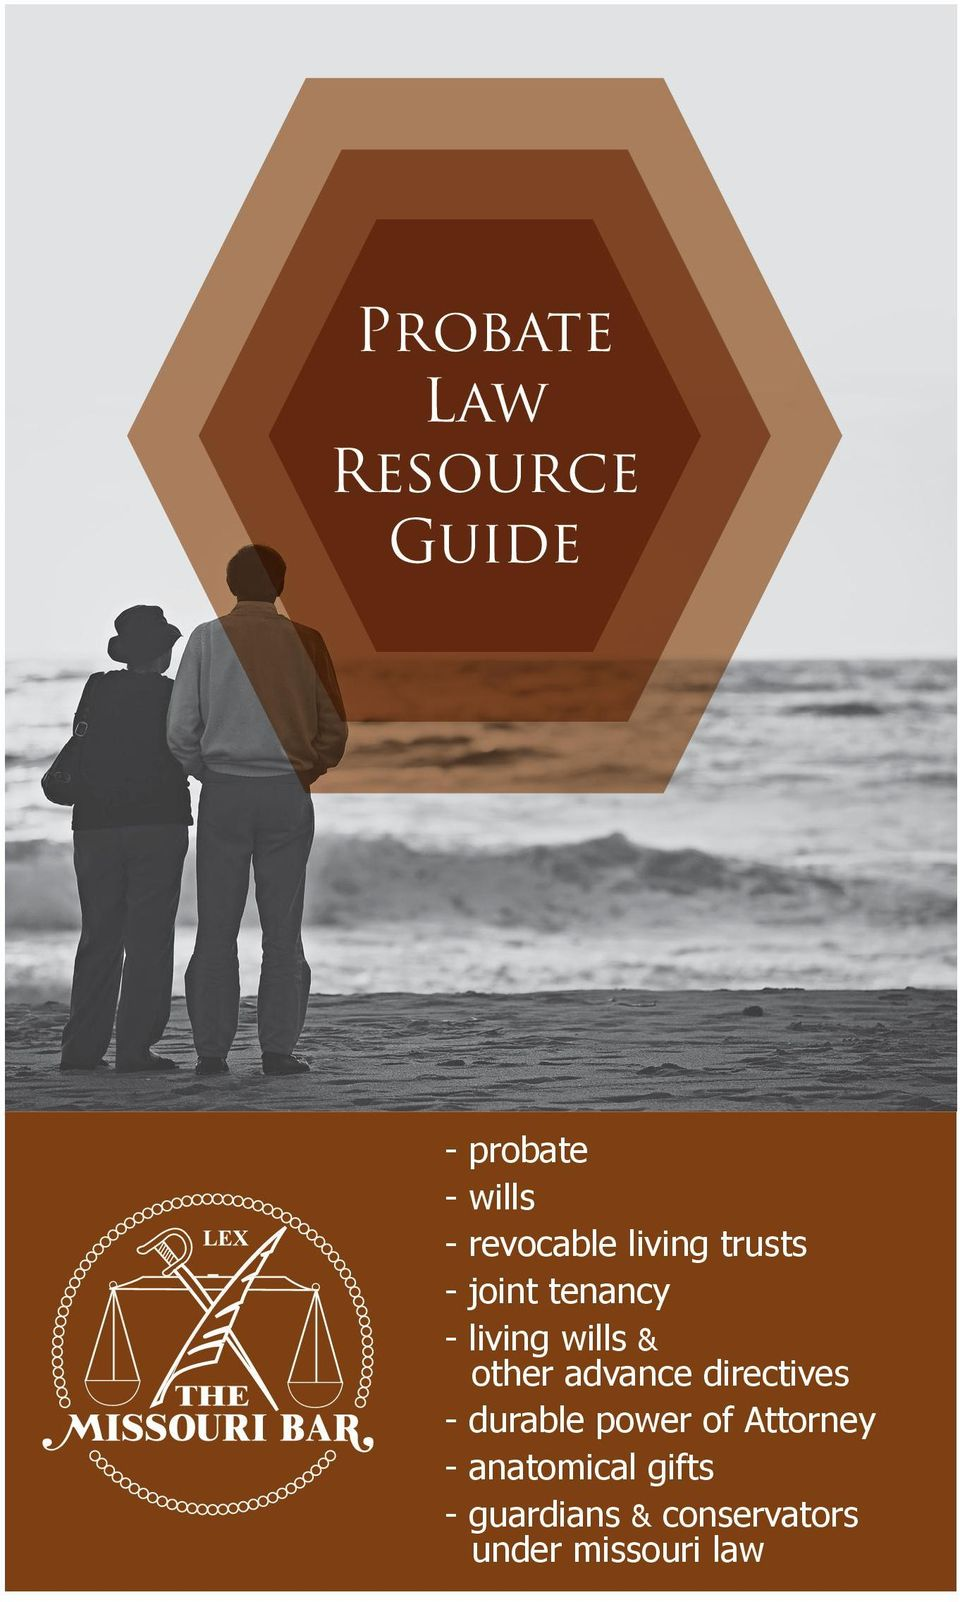 & other advance directives - durable power of Attorney